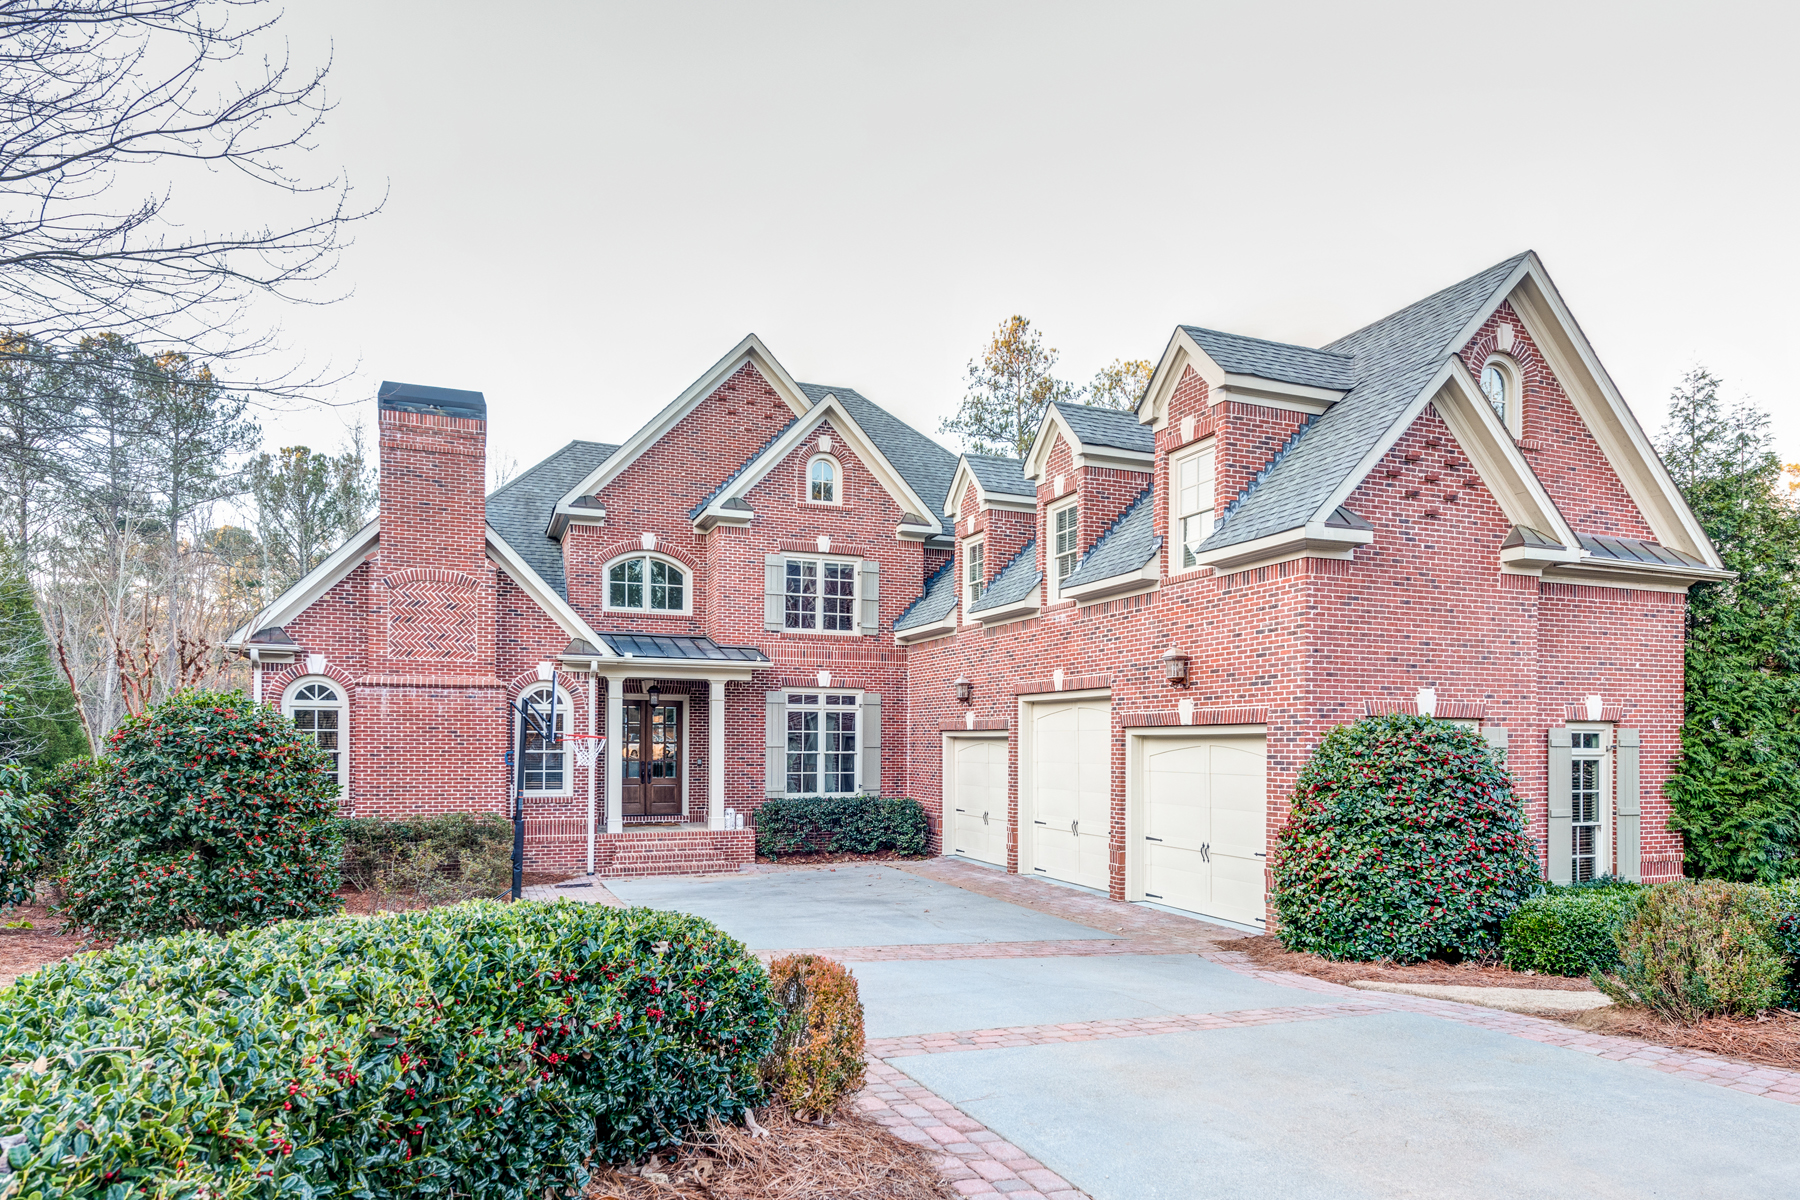 Casa Unifamiliar por un Venta en Gated Golf Course Community 6135 Talmadge Run NW Acworth, Georgia, 30101 Estados Unidos